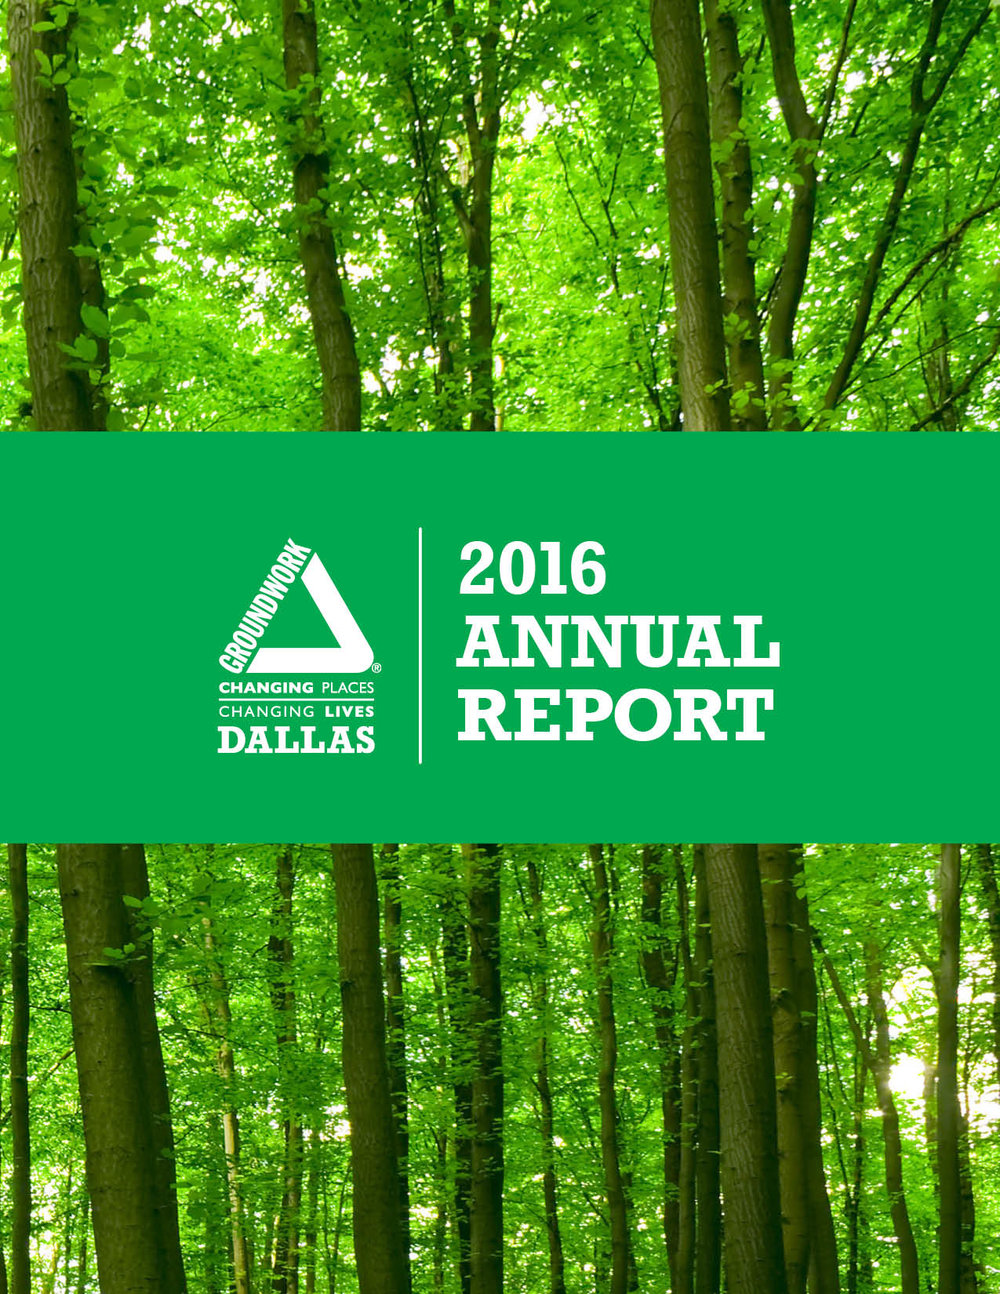 GWD_2016_Annual_Report_V12_Big.jpg